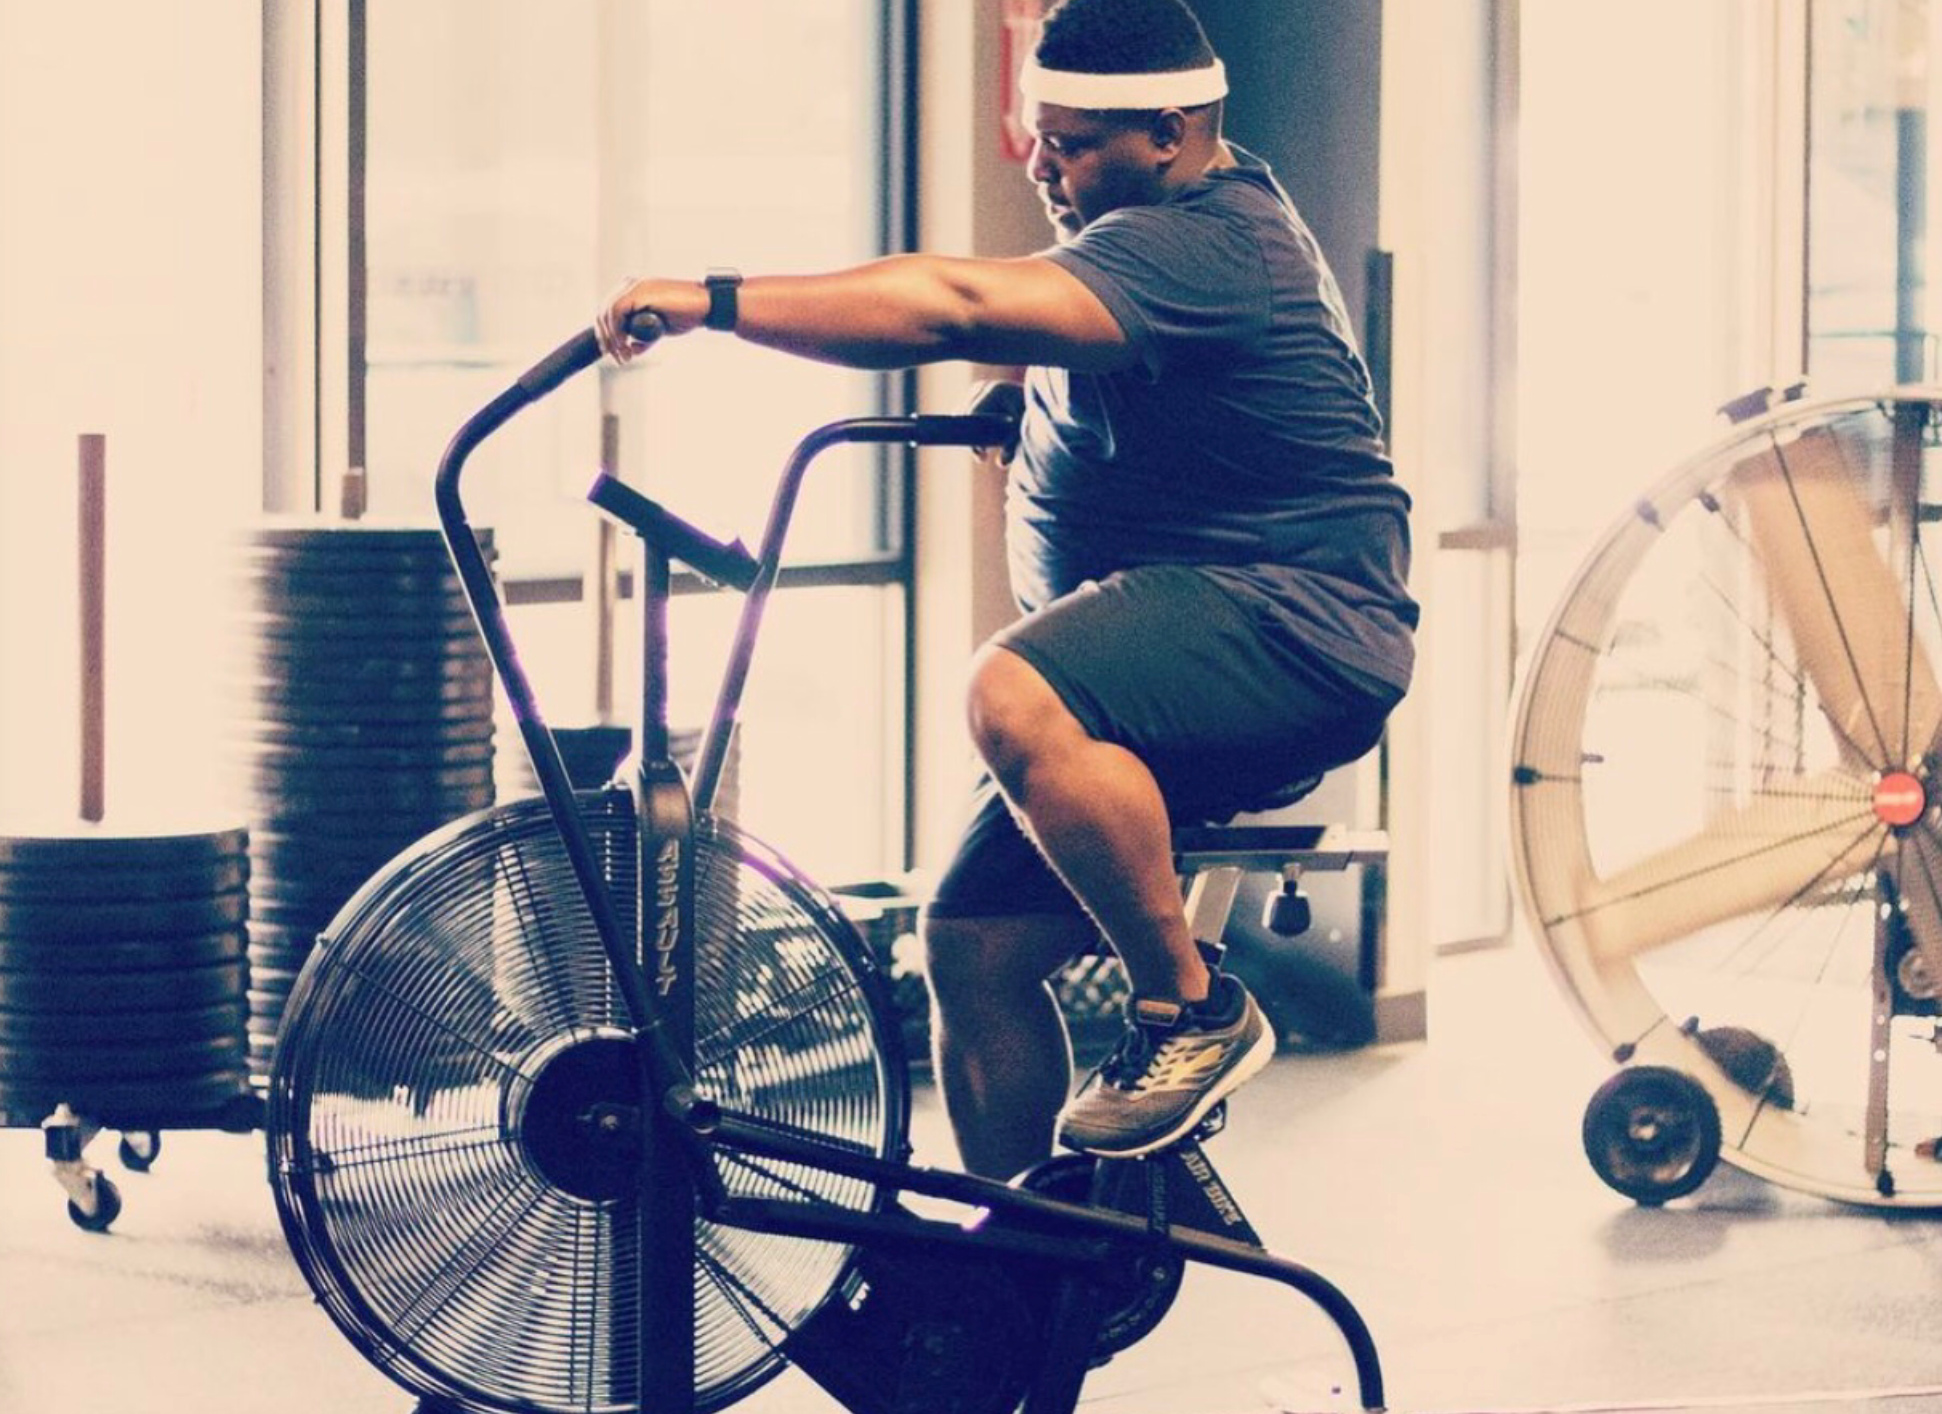 Air bikes are a typical CrossFit and bootcamp equipment that can be used at high intensity